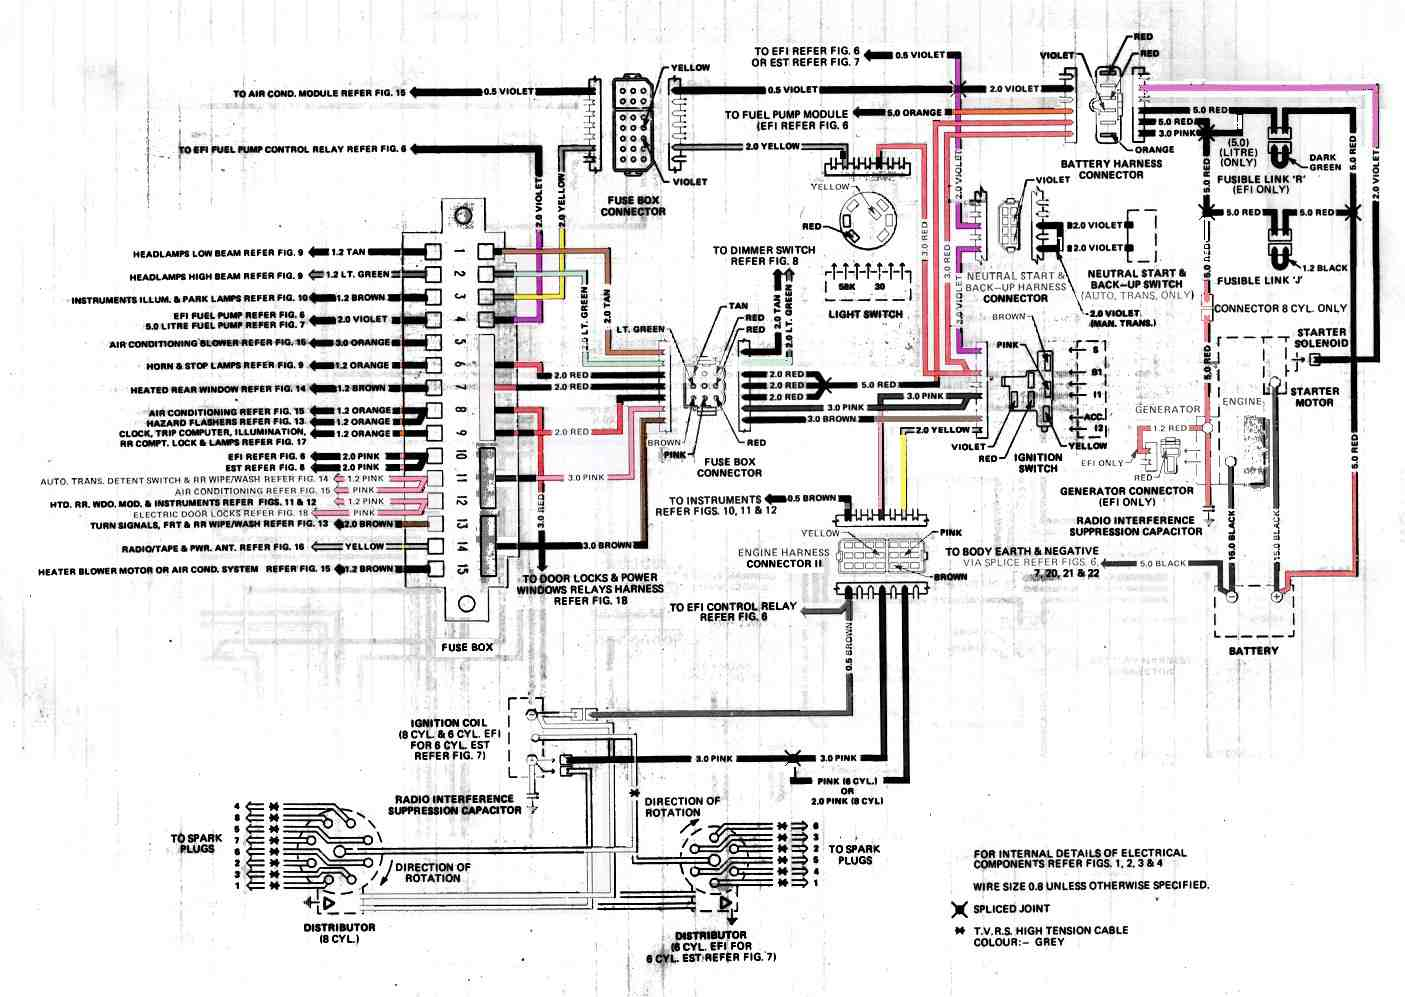 Wb Holden Wiring Diagram Page 3 And Schematics Lx Torana Car Manuals Diagrams Pdf Fault Codes Rh Automotive Net Vs V8